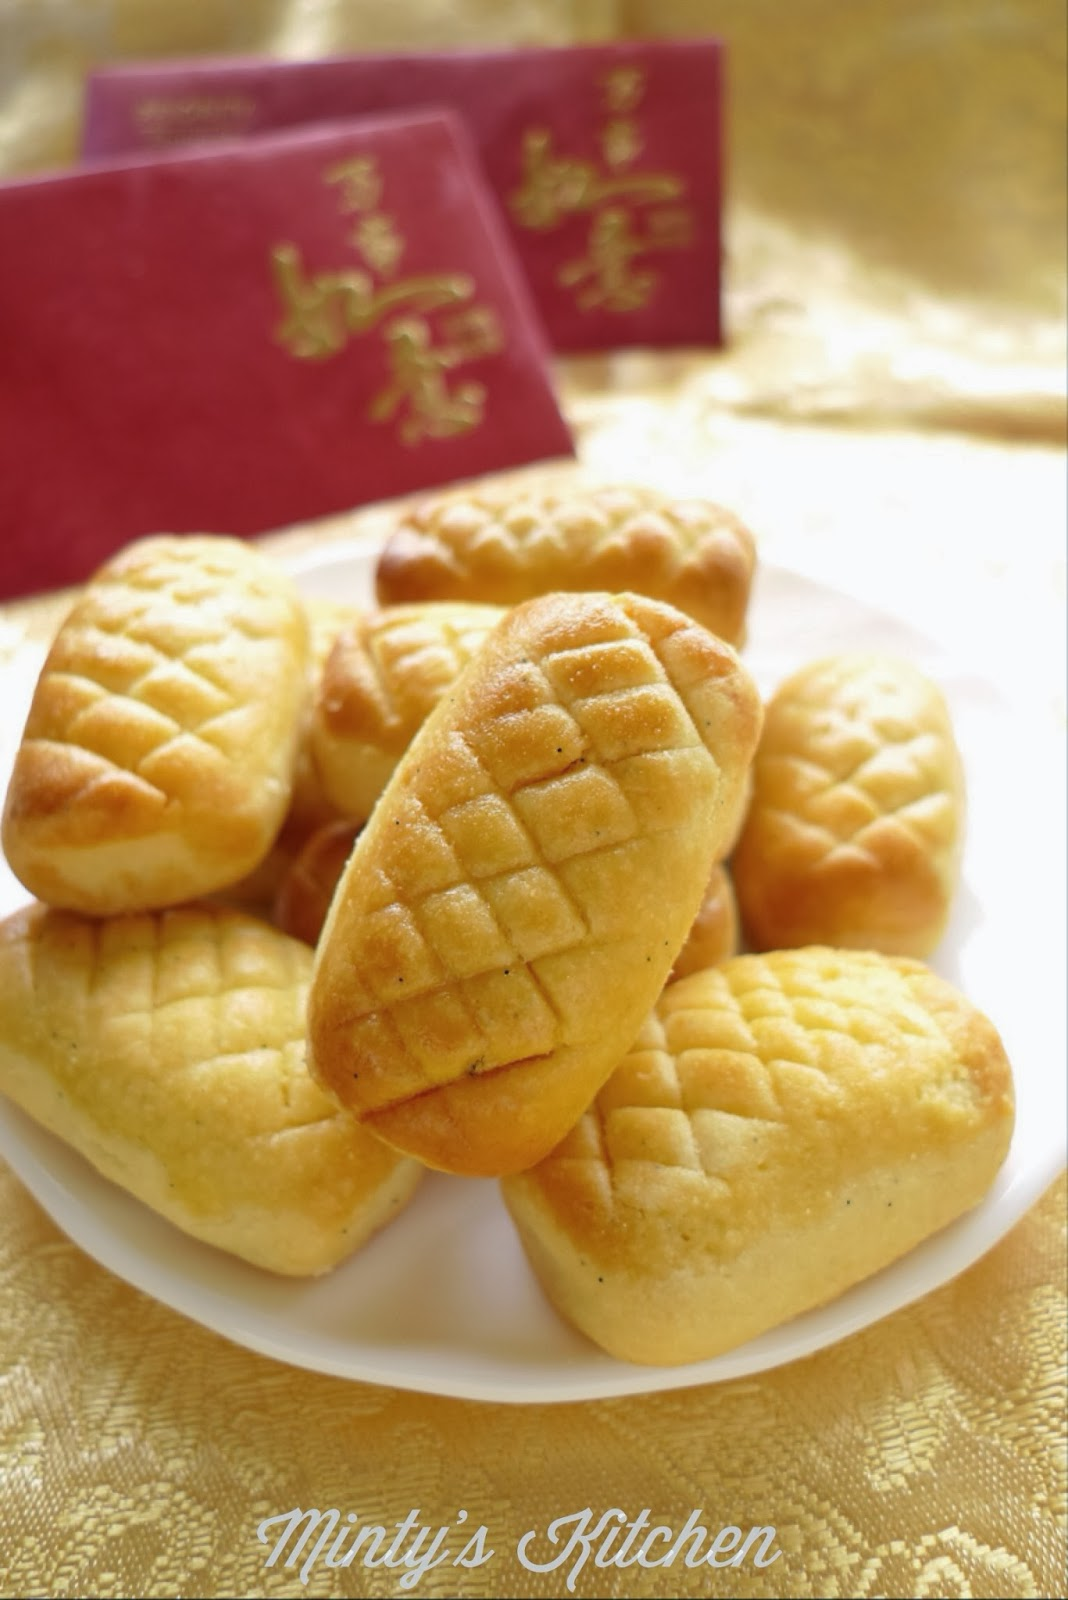 Pineapple Tarts (凤梨酥)